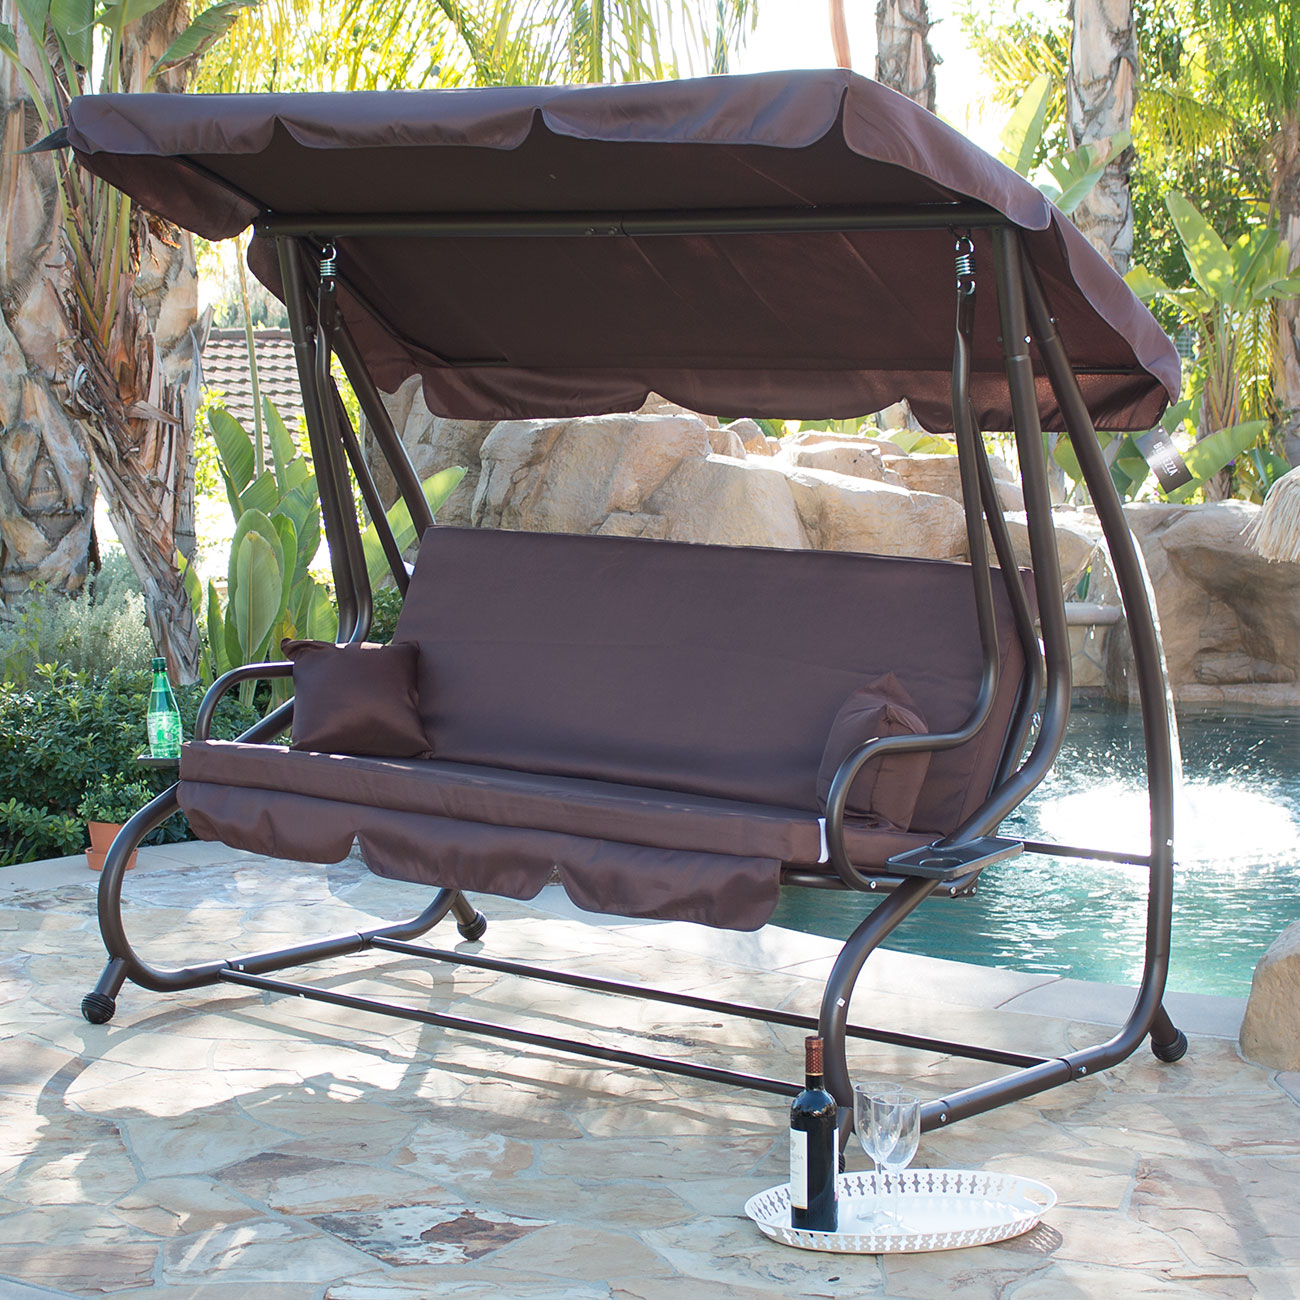 Outdoor Swing Bed Patio Adjustable Canopy Deck Porch Seat Chair w 2 Pillow